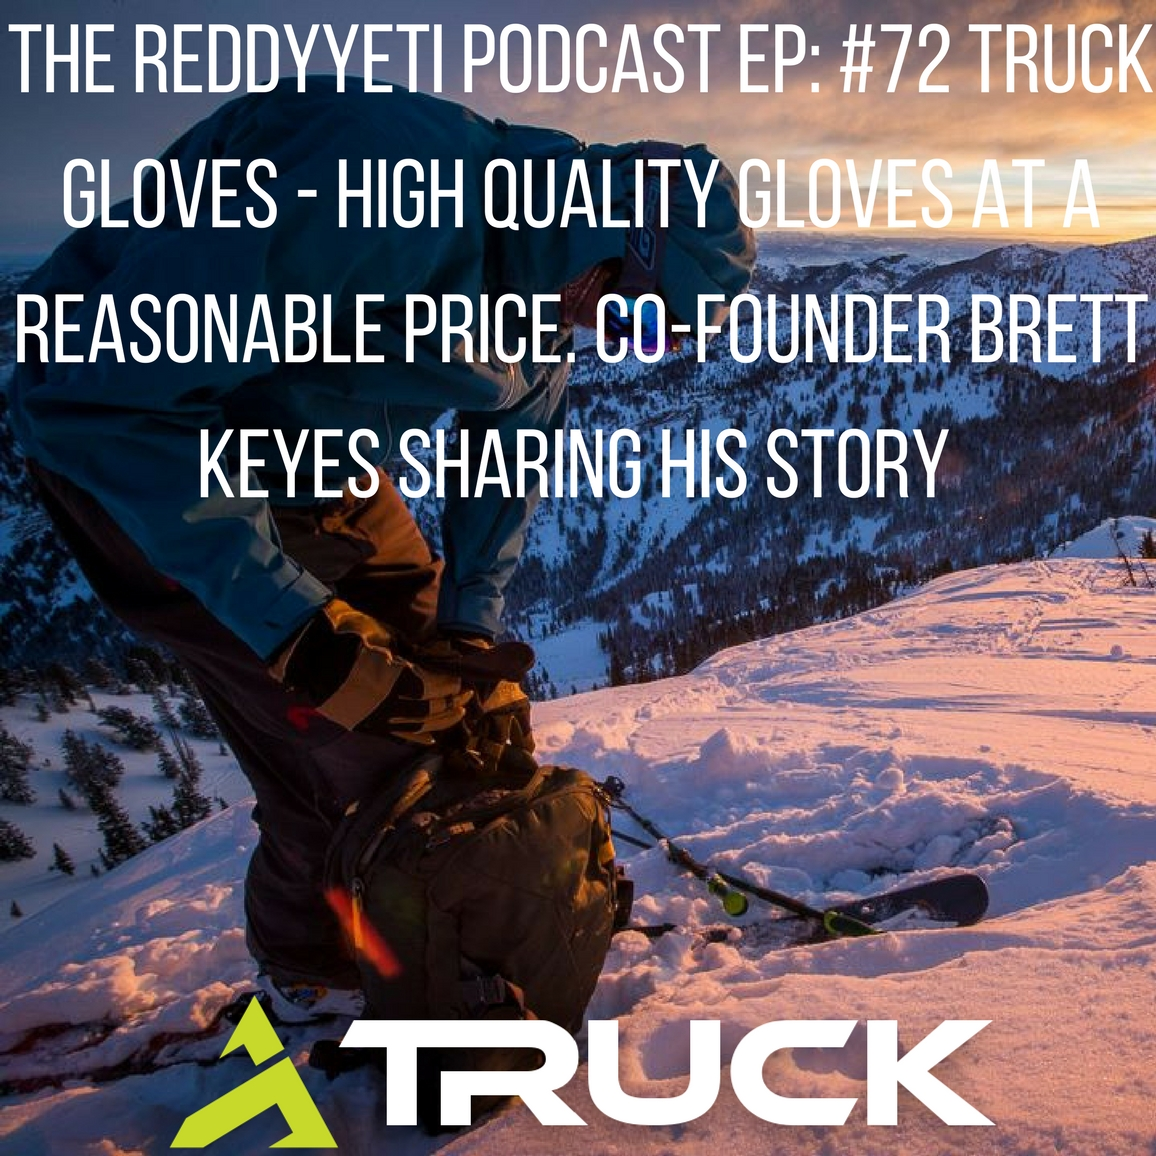 Truck Gloves Podcast image.jpg